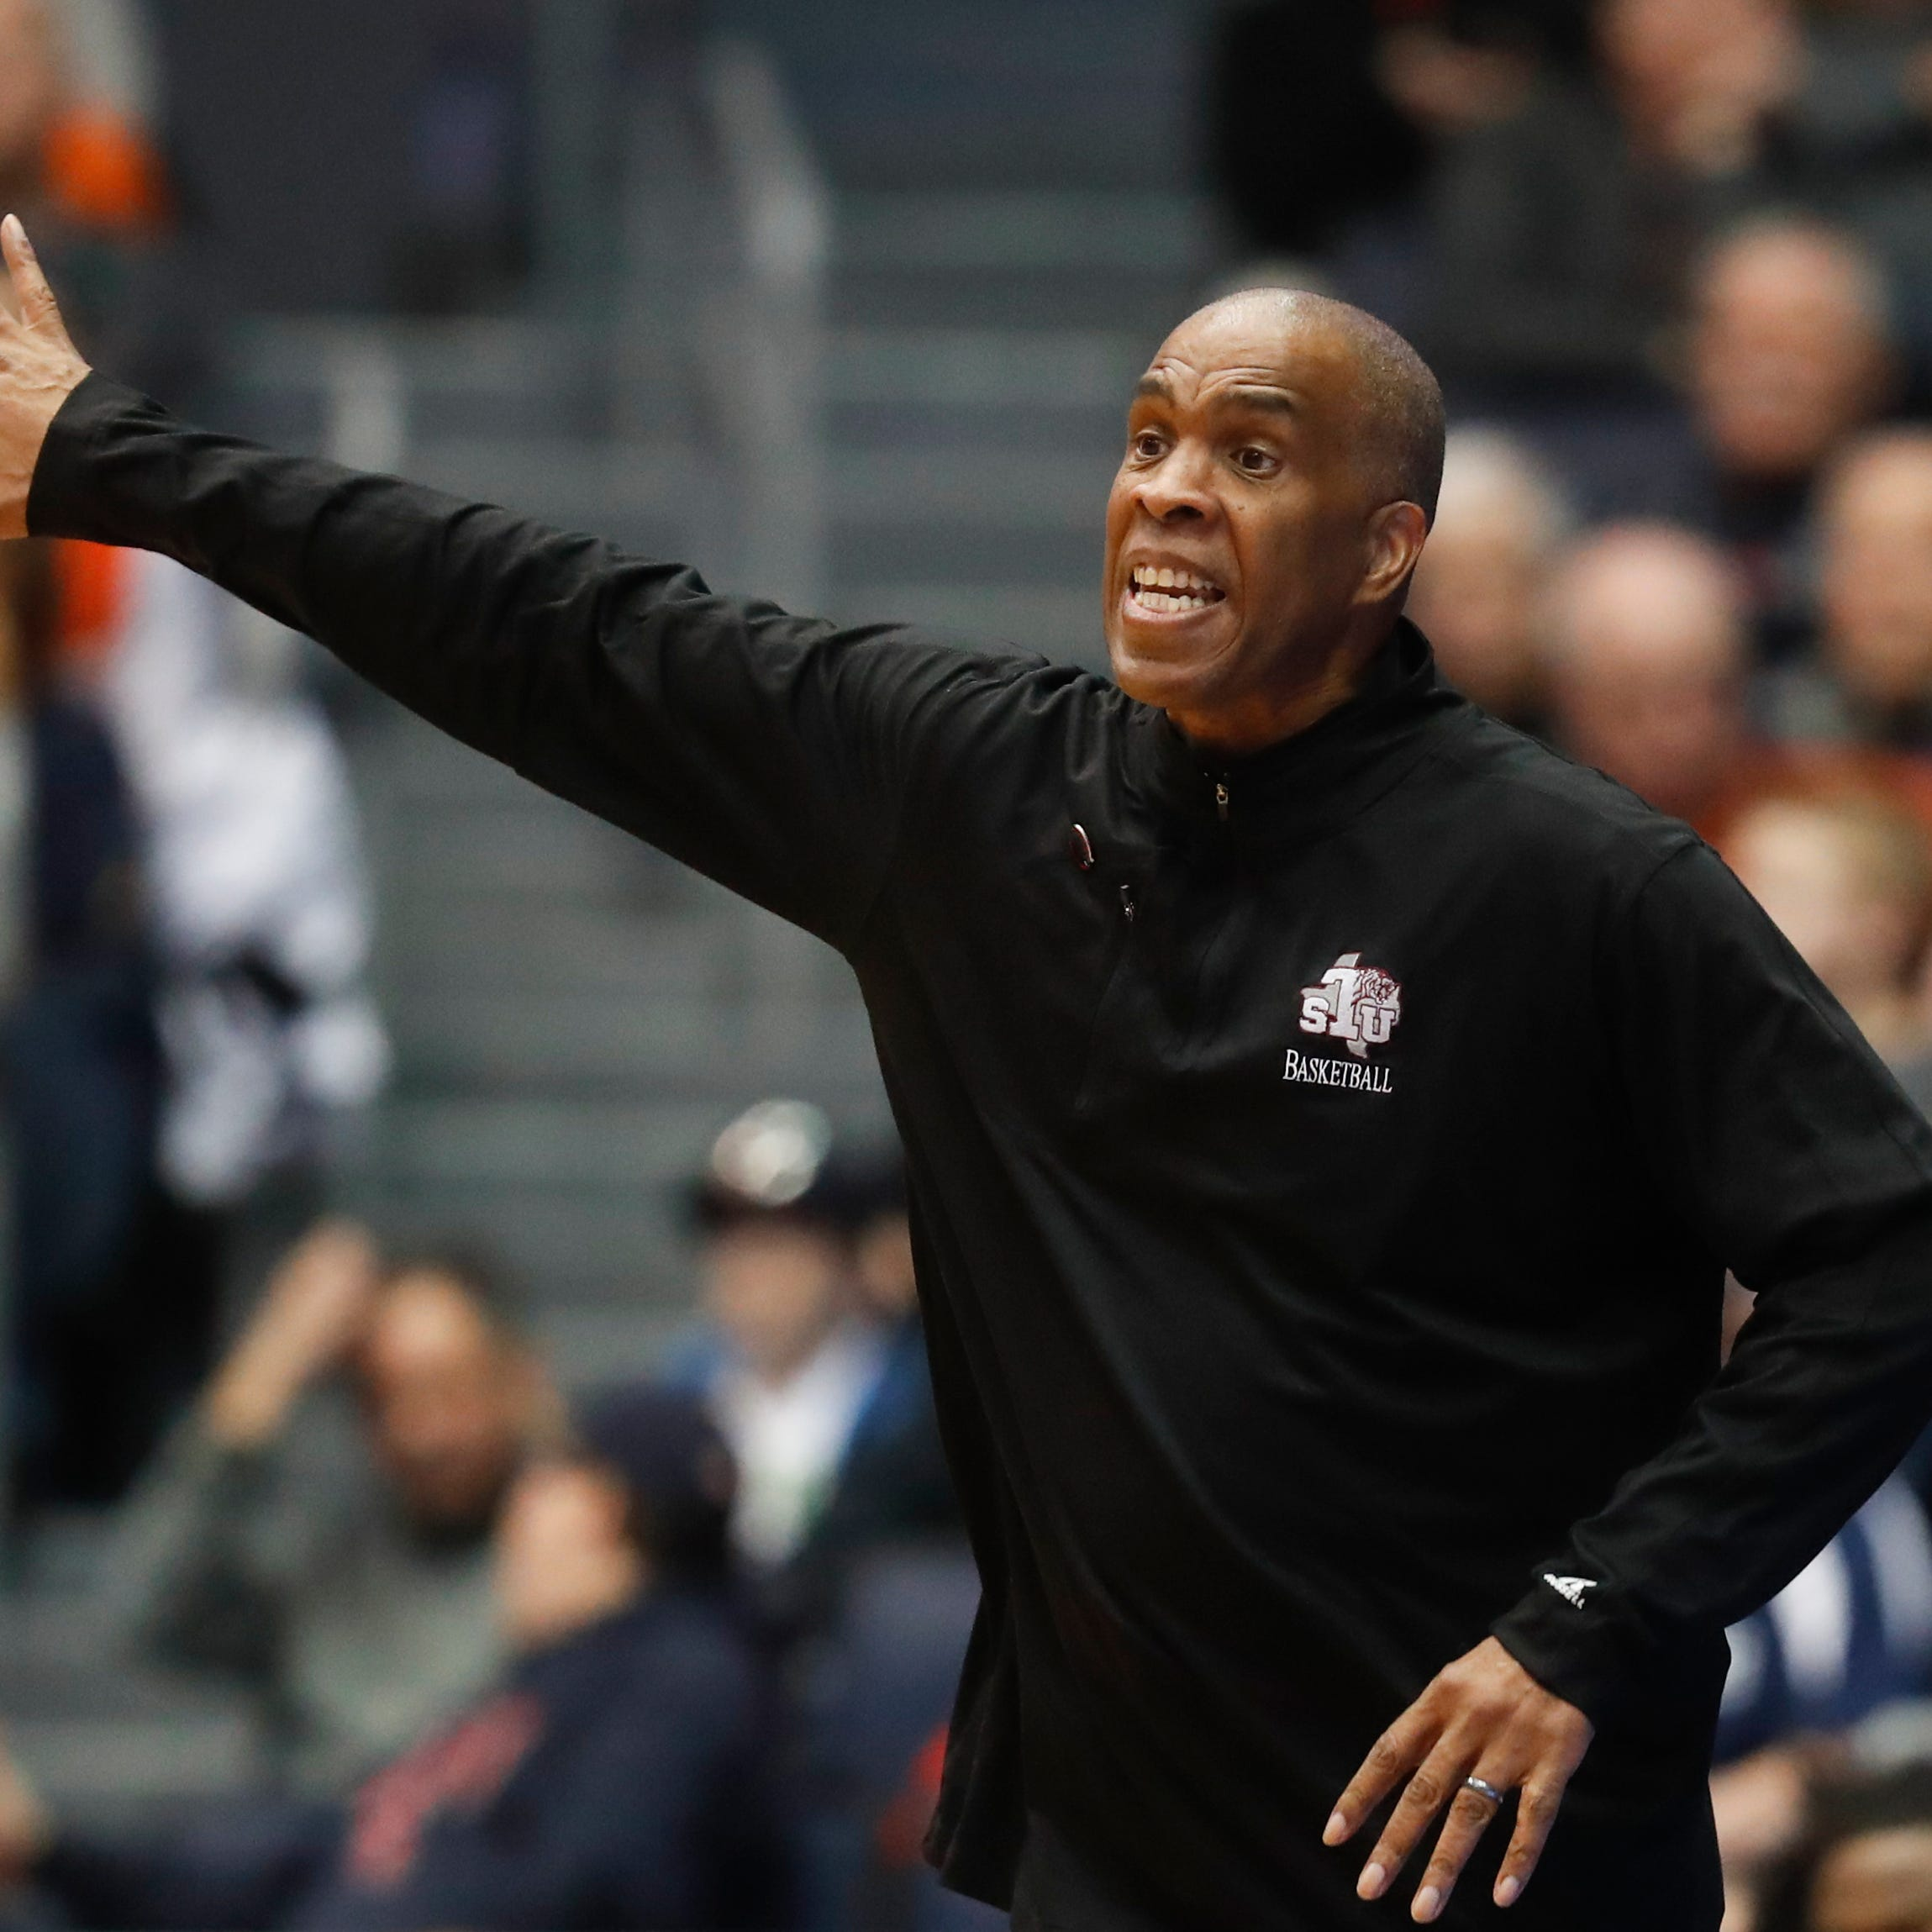 Former IU coach Mike Davis: '100 times better than I was at Indiana'